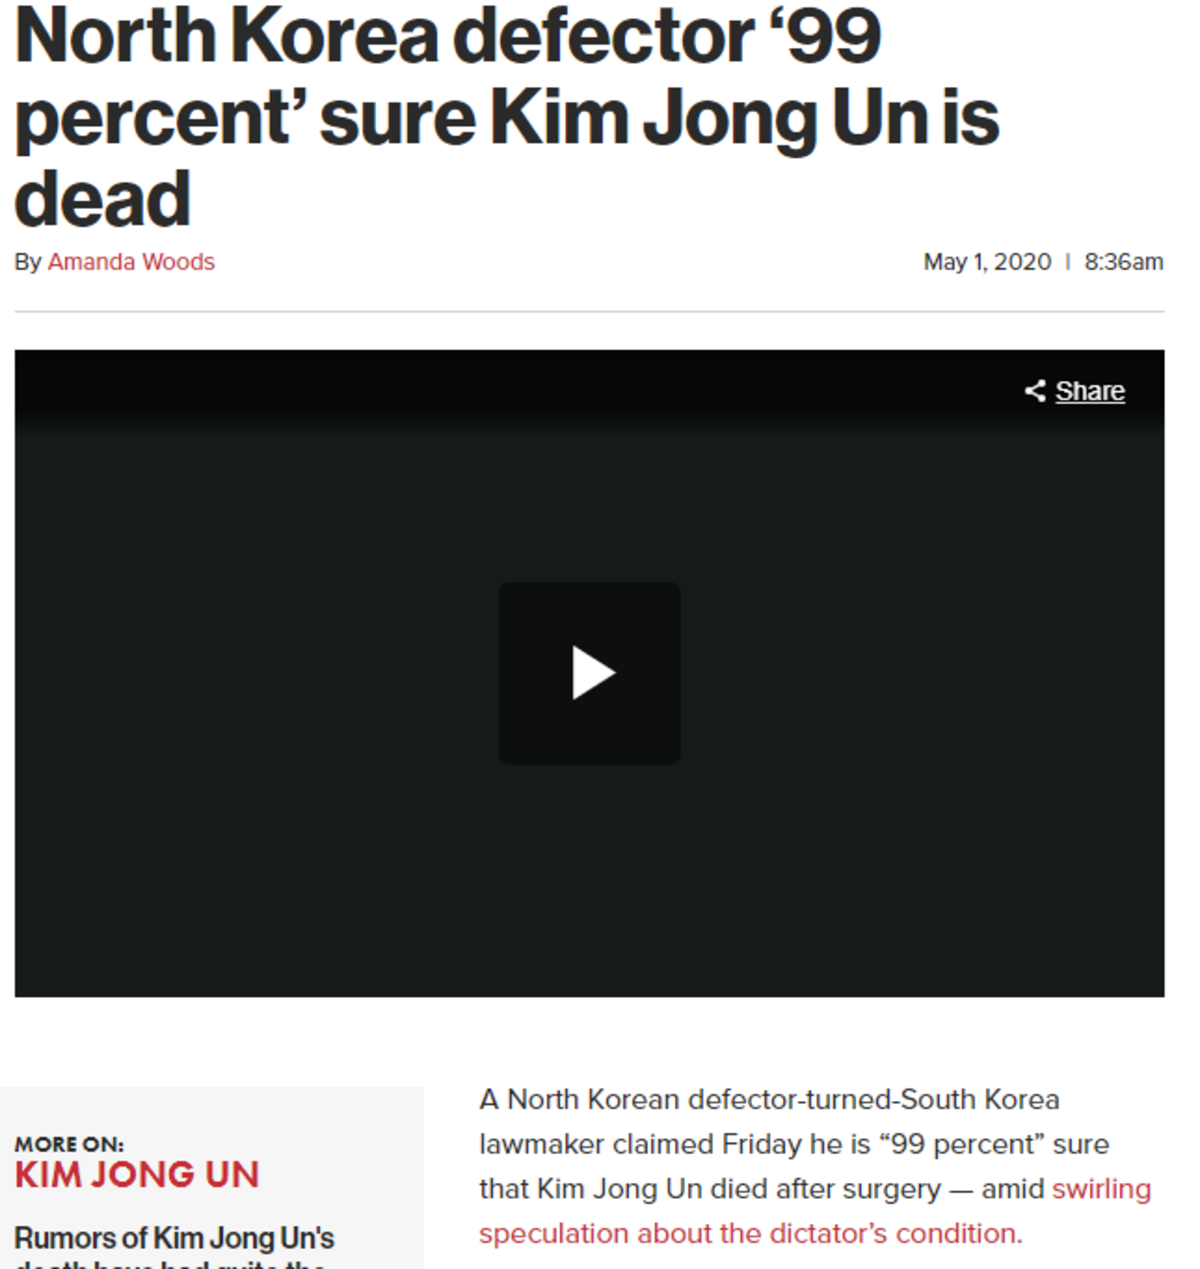 North Korean Defector claims Kim Jong Un is dead. .. We will know when the dust settles. for now they aren't testing nukes so it doesnt matter.